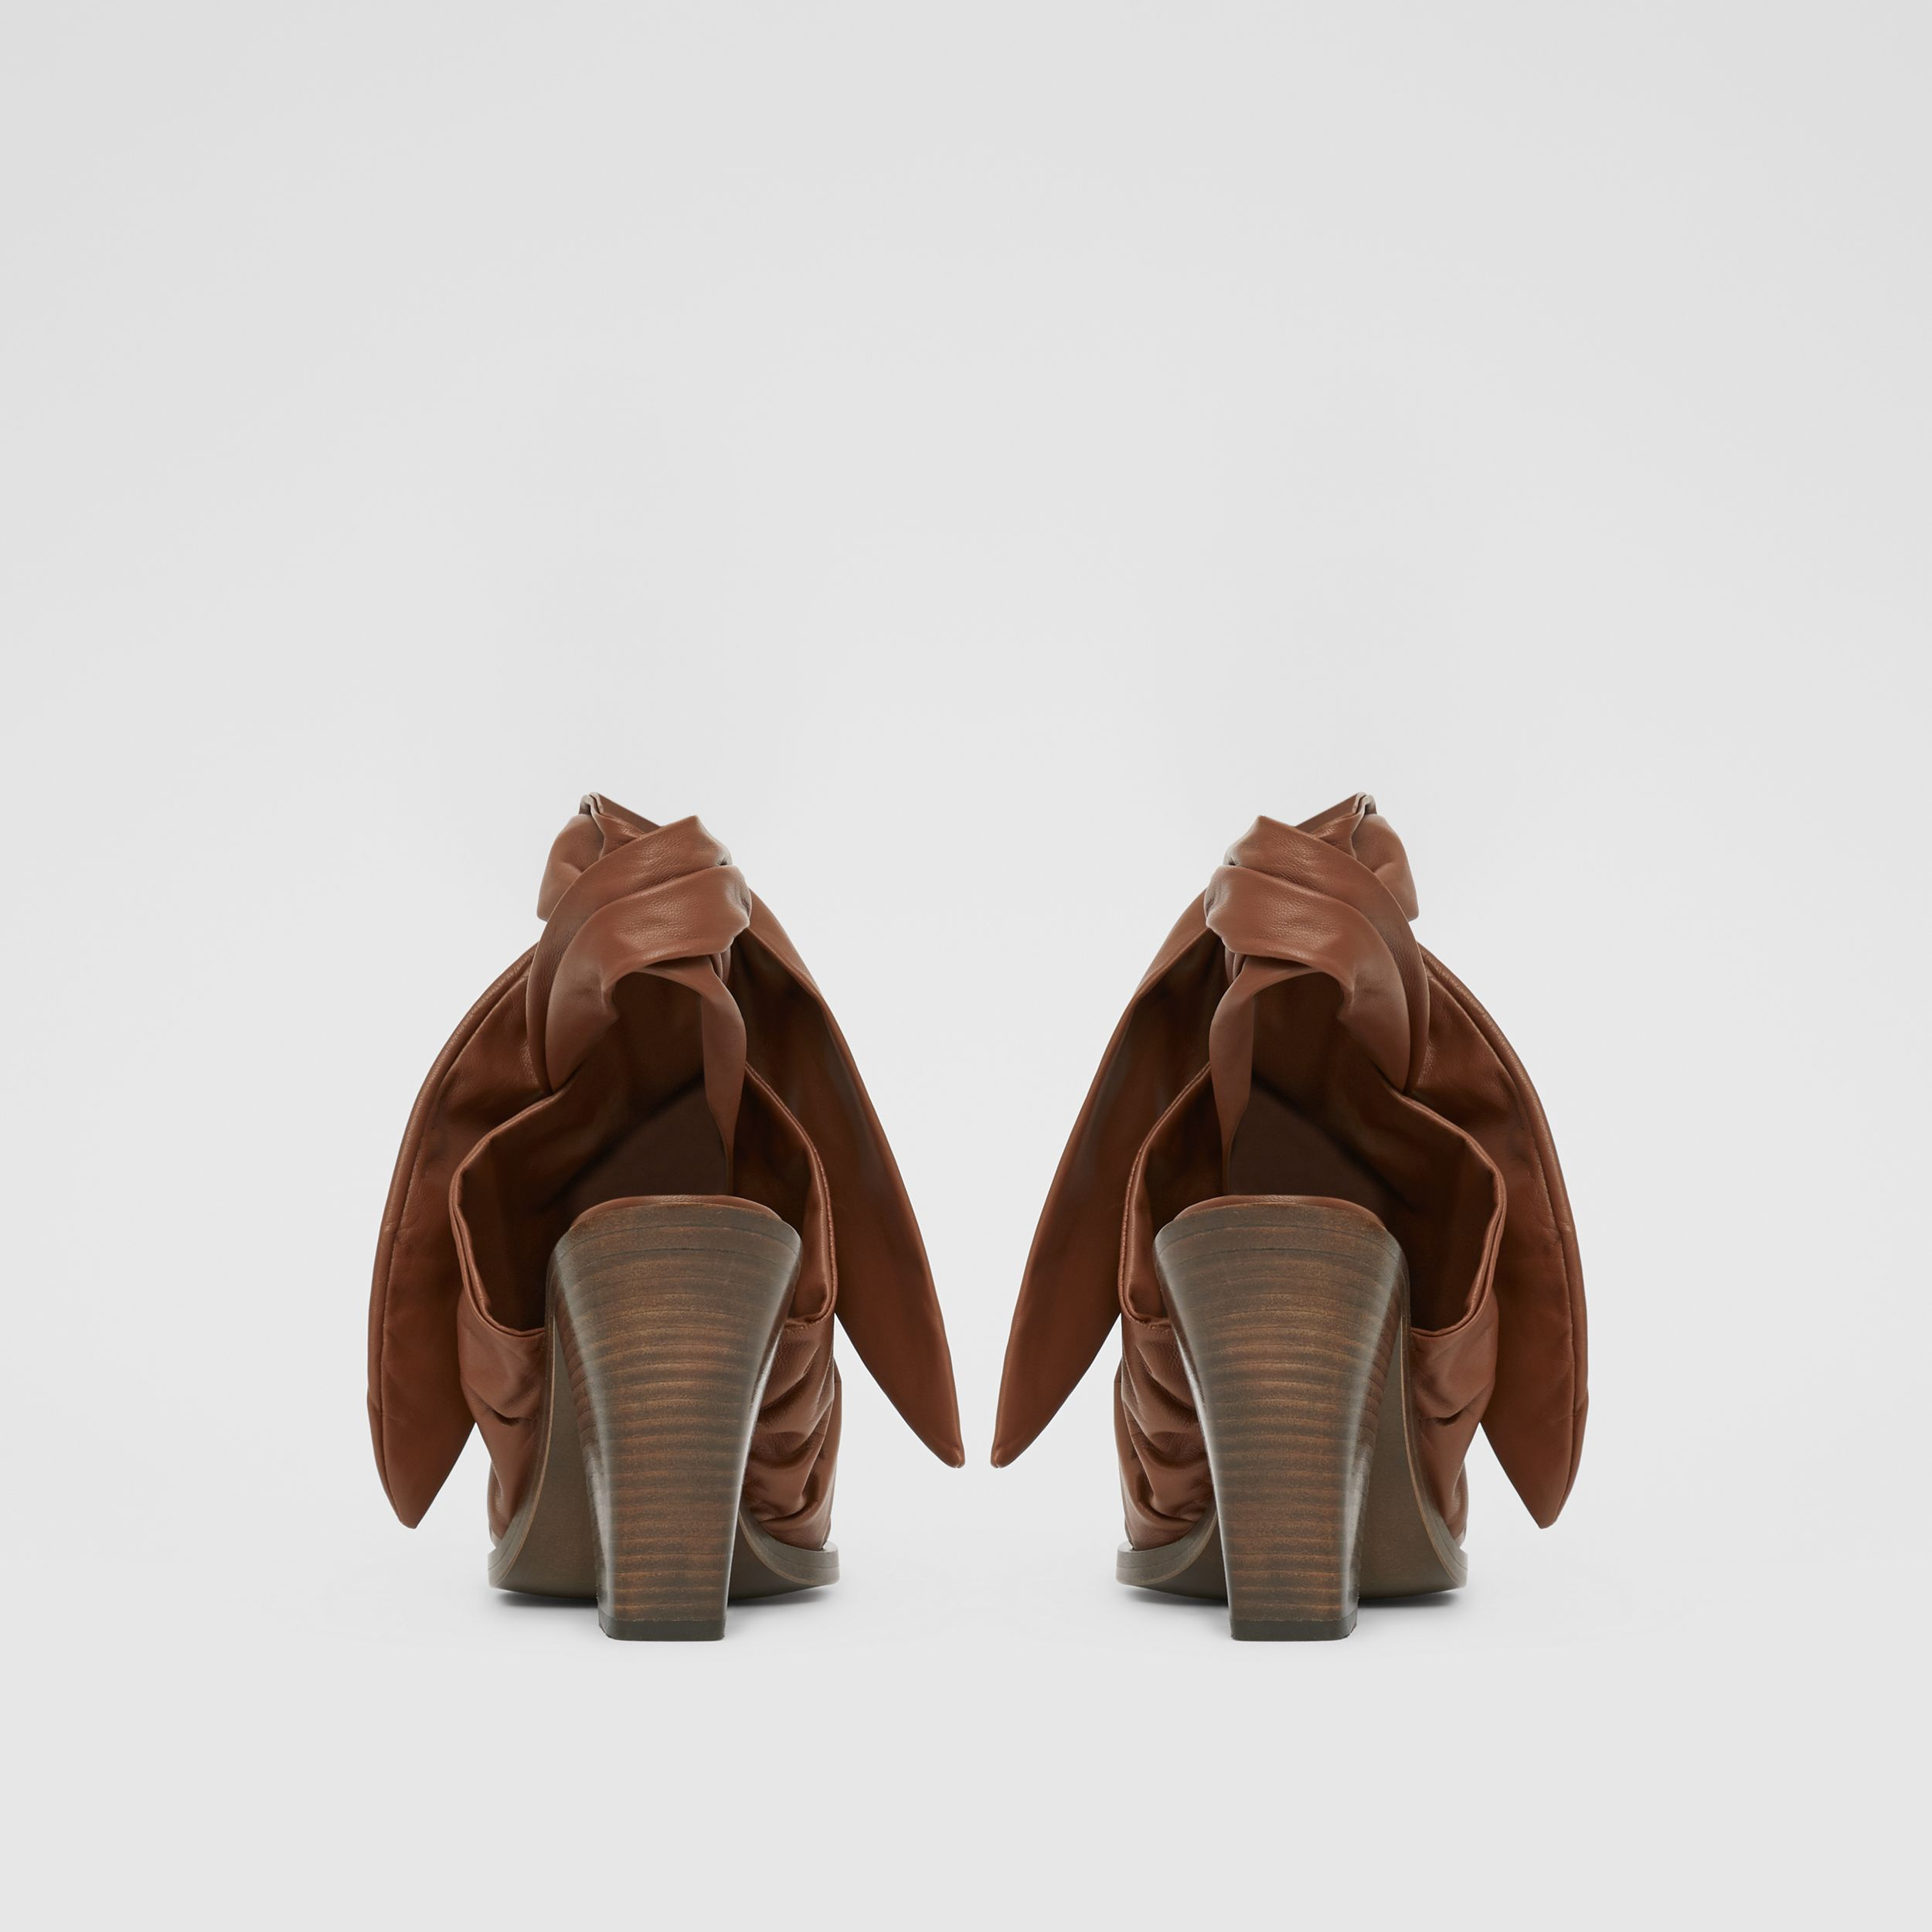 Scarf Tie Detail Lambskin Point-toe Mules in Tan - Women | Burberry - 4